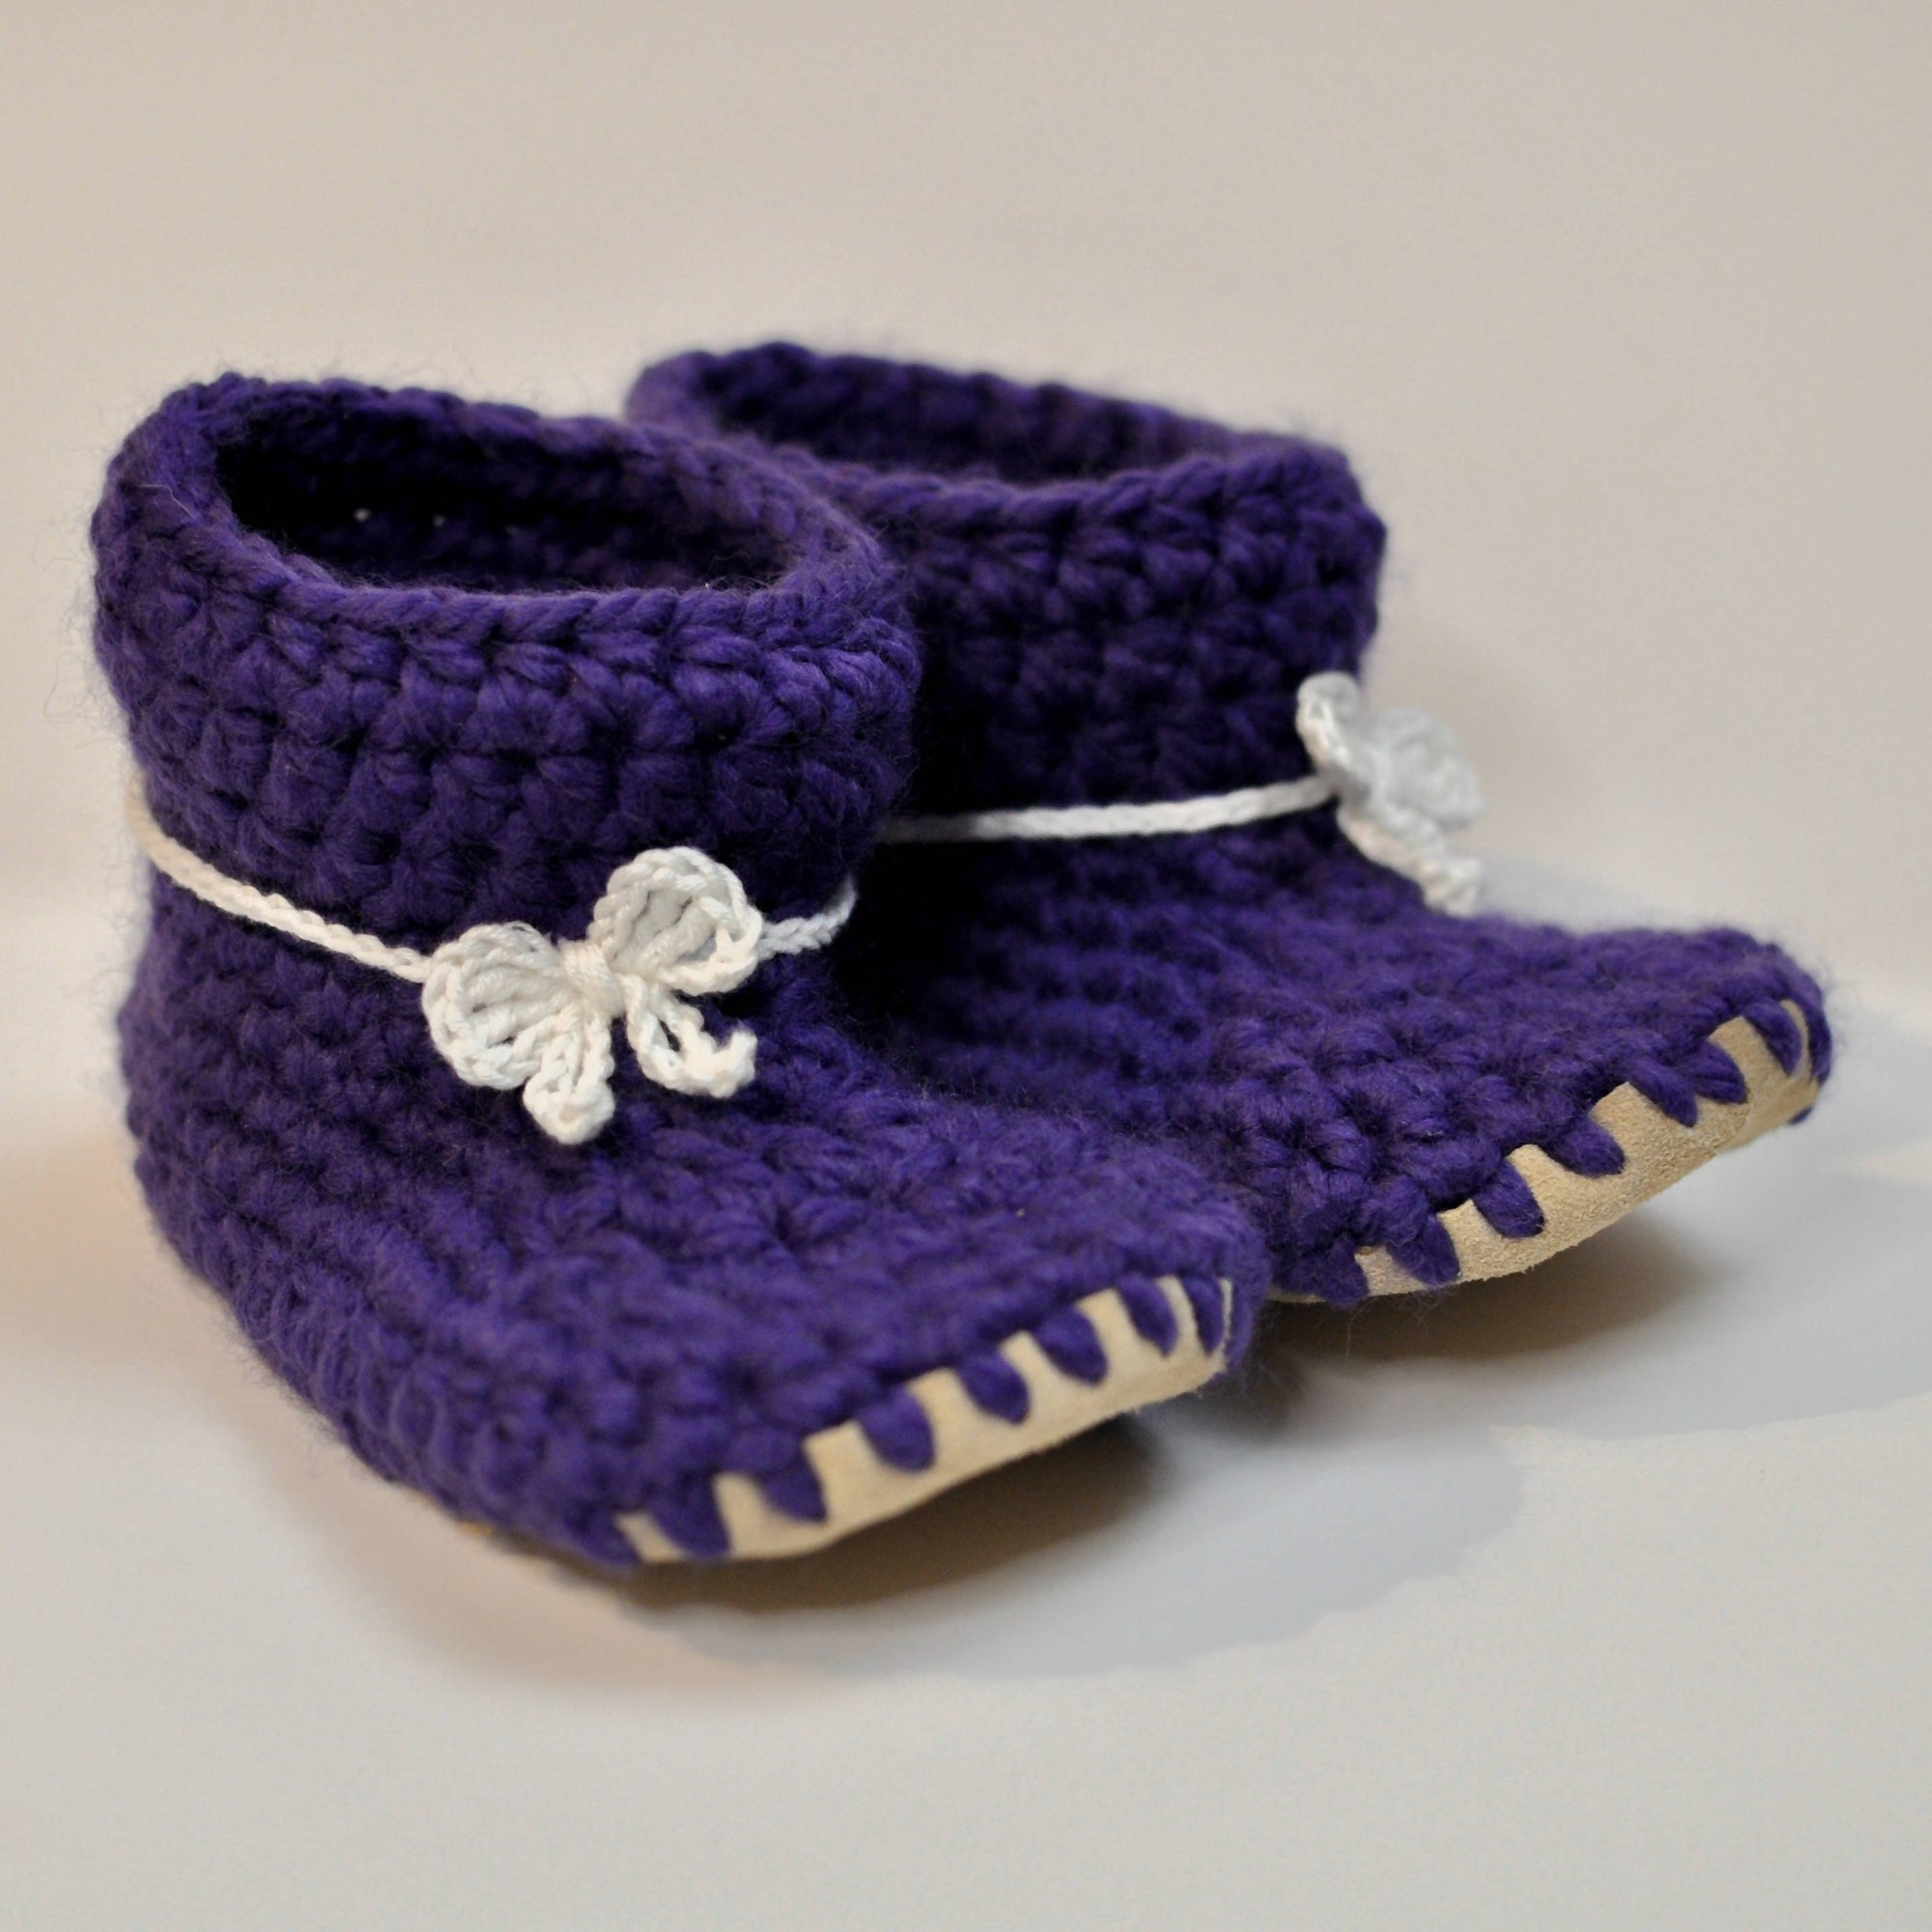 Baby Shoes // Baby Slippers // Crochet Booties // Leather Bottom Boots // Newborn Baby Toddler Child - PURPLE with BOW